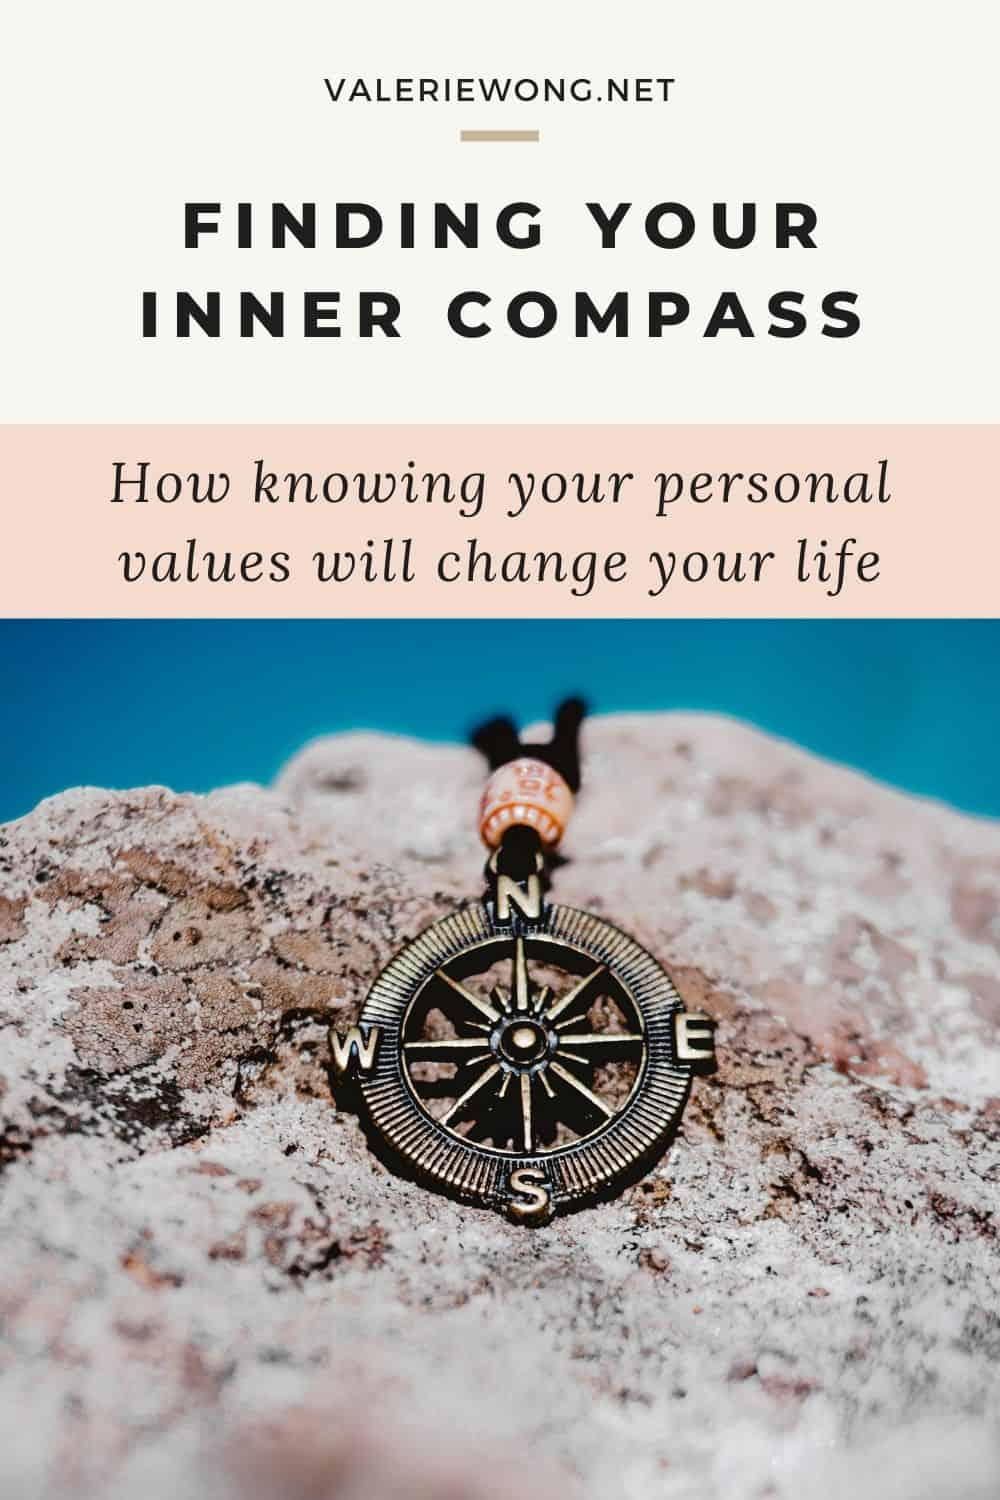 How to Find Your Core Values | Core values are the personal values you hold most sacred, and knowing them is a game changer! If you've ever felt unclear about your life direction, you probably aren't living in alignment with your values - you might not even know them. Finding your core values is key for intentional living & creating a fulfilling life. Read the post + download the FREE WORKBOOK (with values list) to get clear on your values & start living your best life! | ValerieWong.net via @valeriewonglifecoach